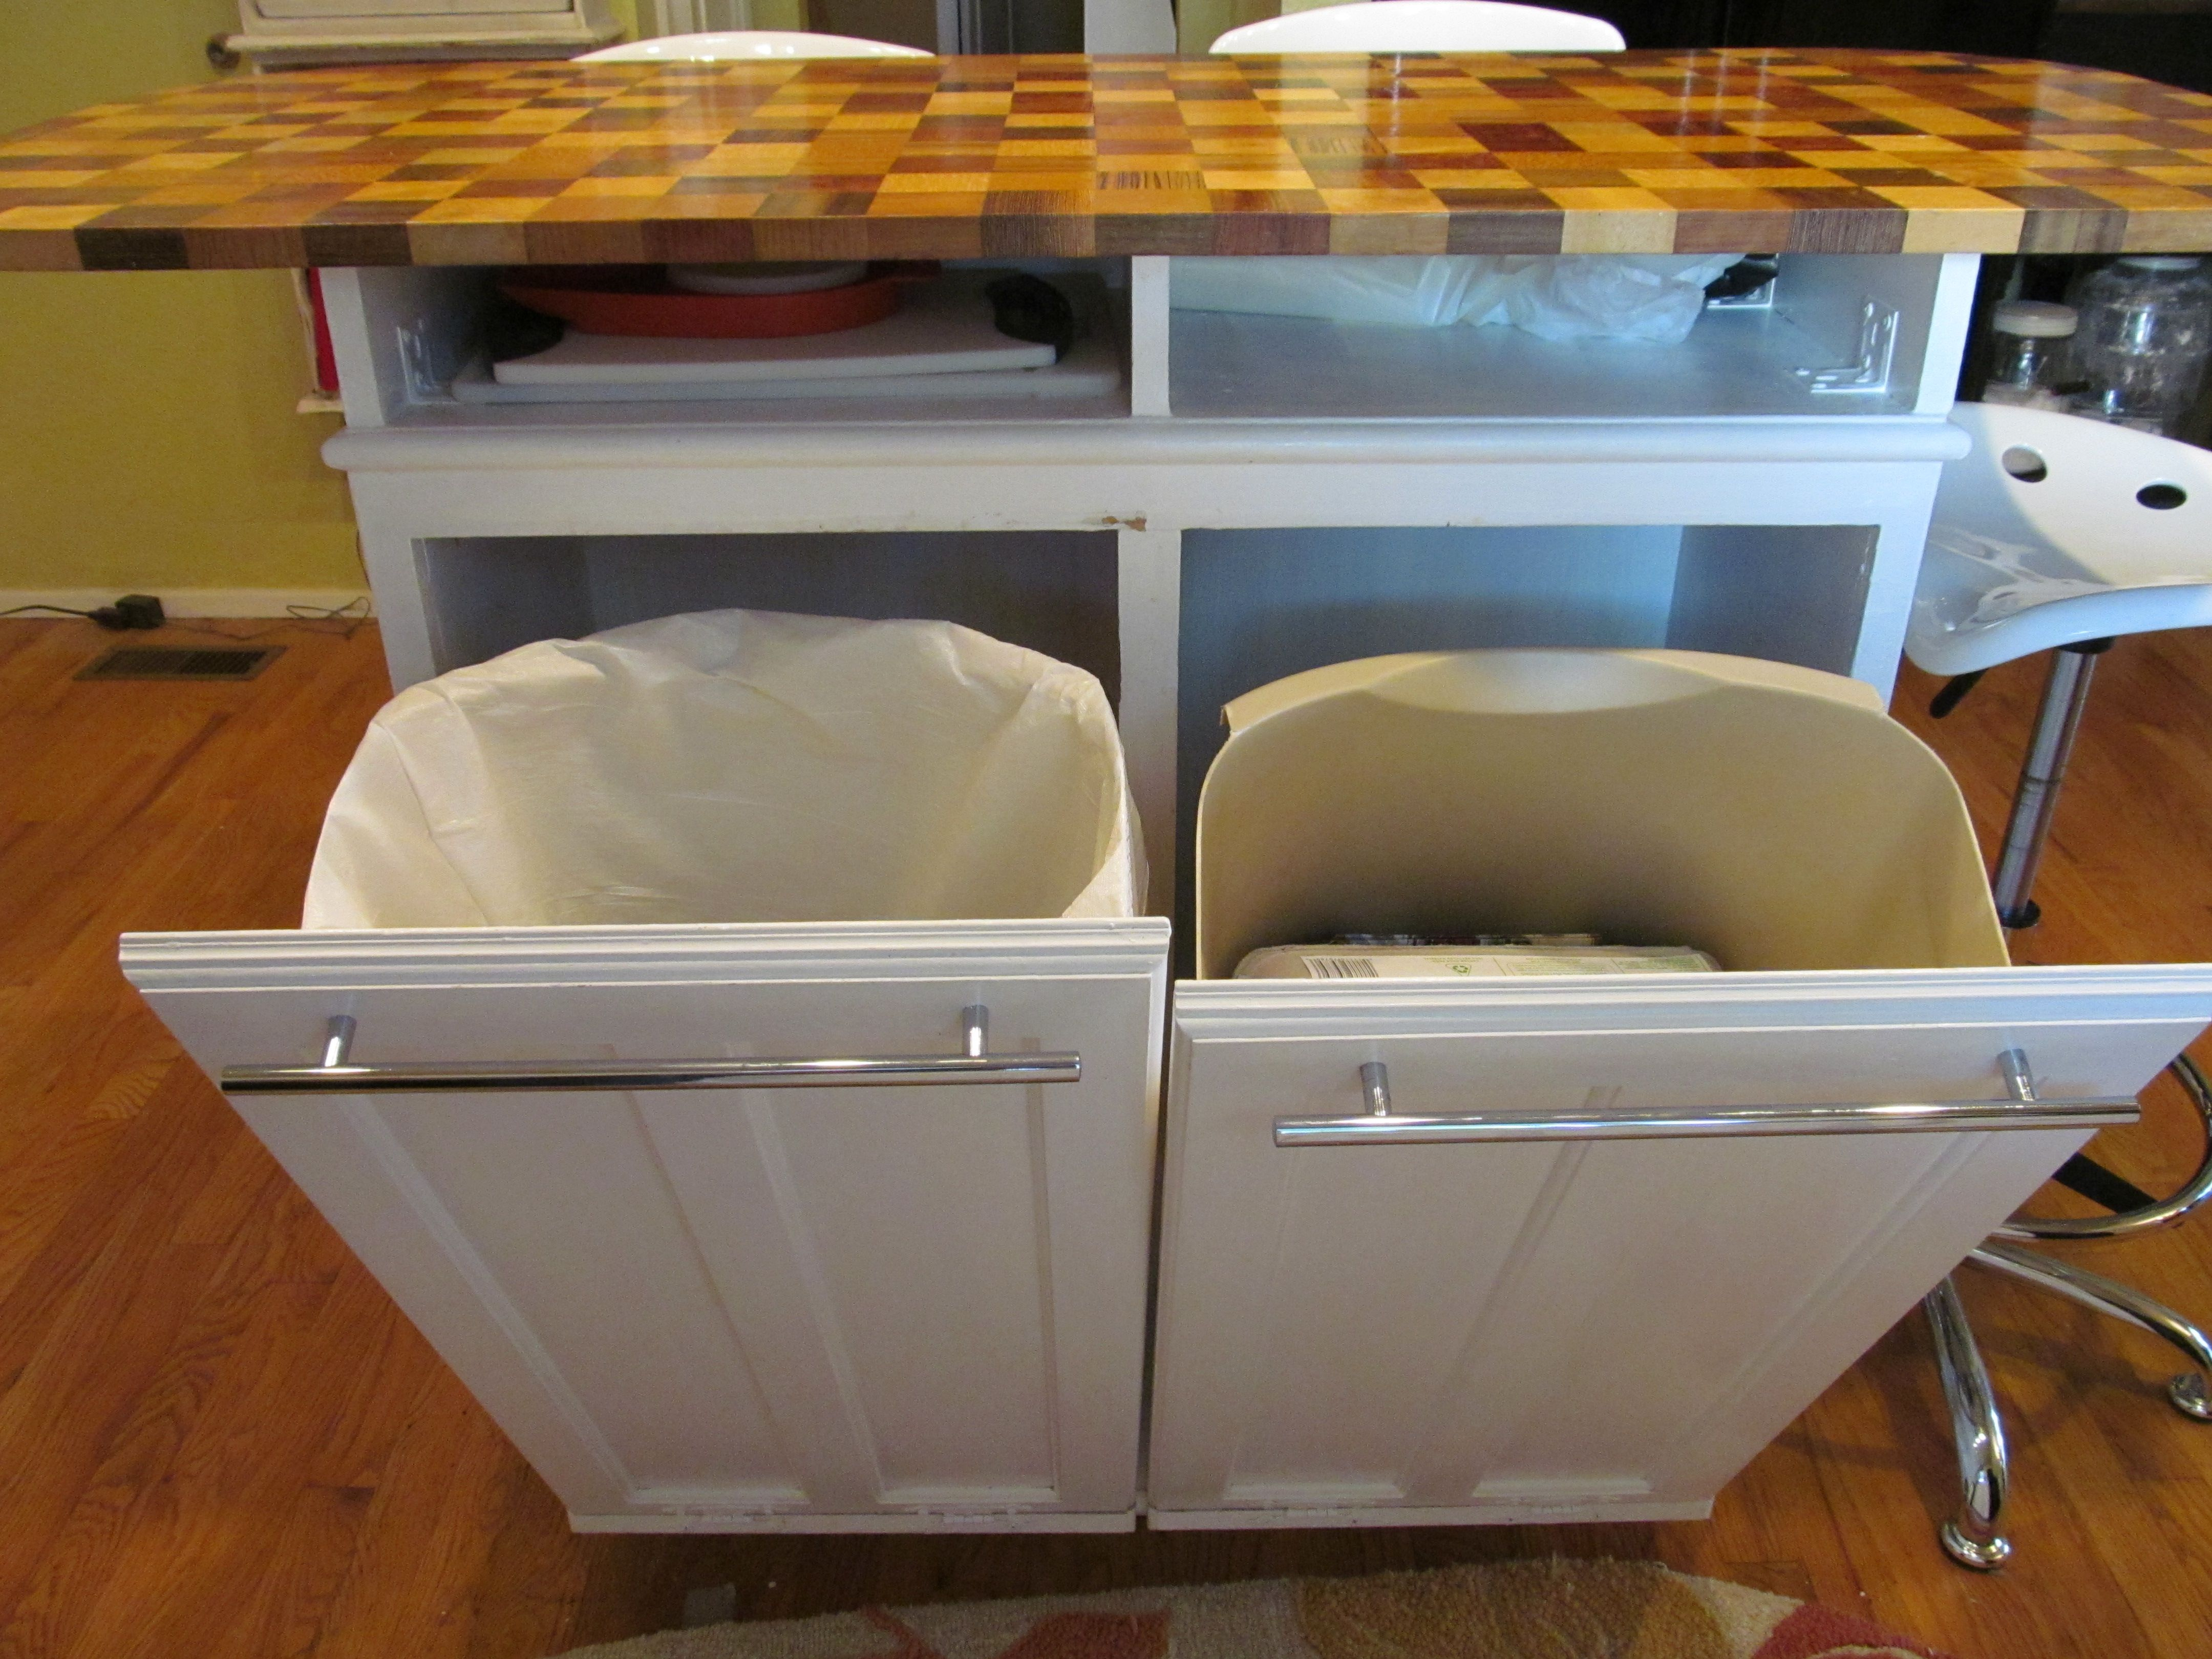 Kitchen Island Trash Bins - would fit in one foot cabinets in narrow space